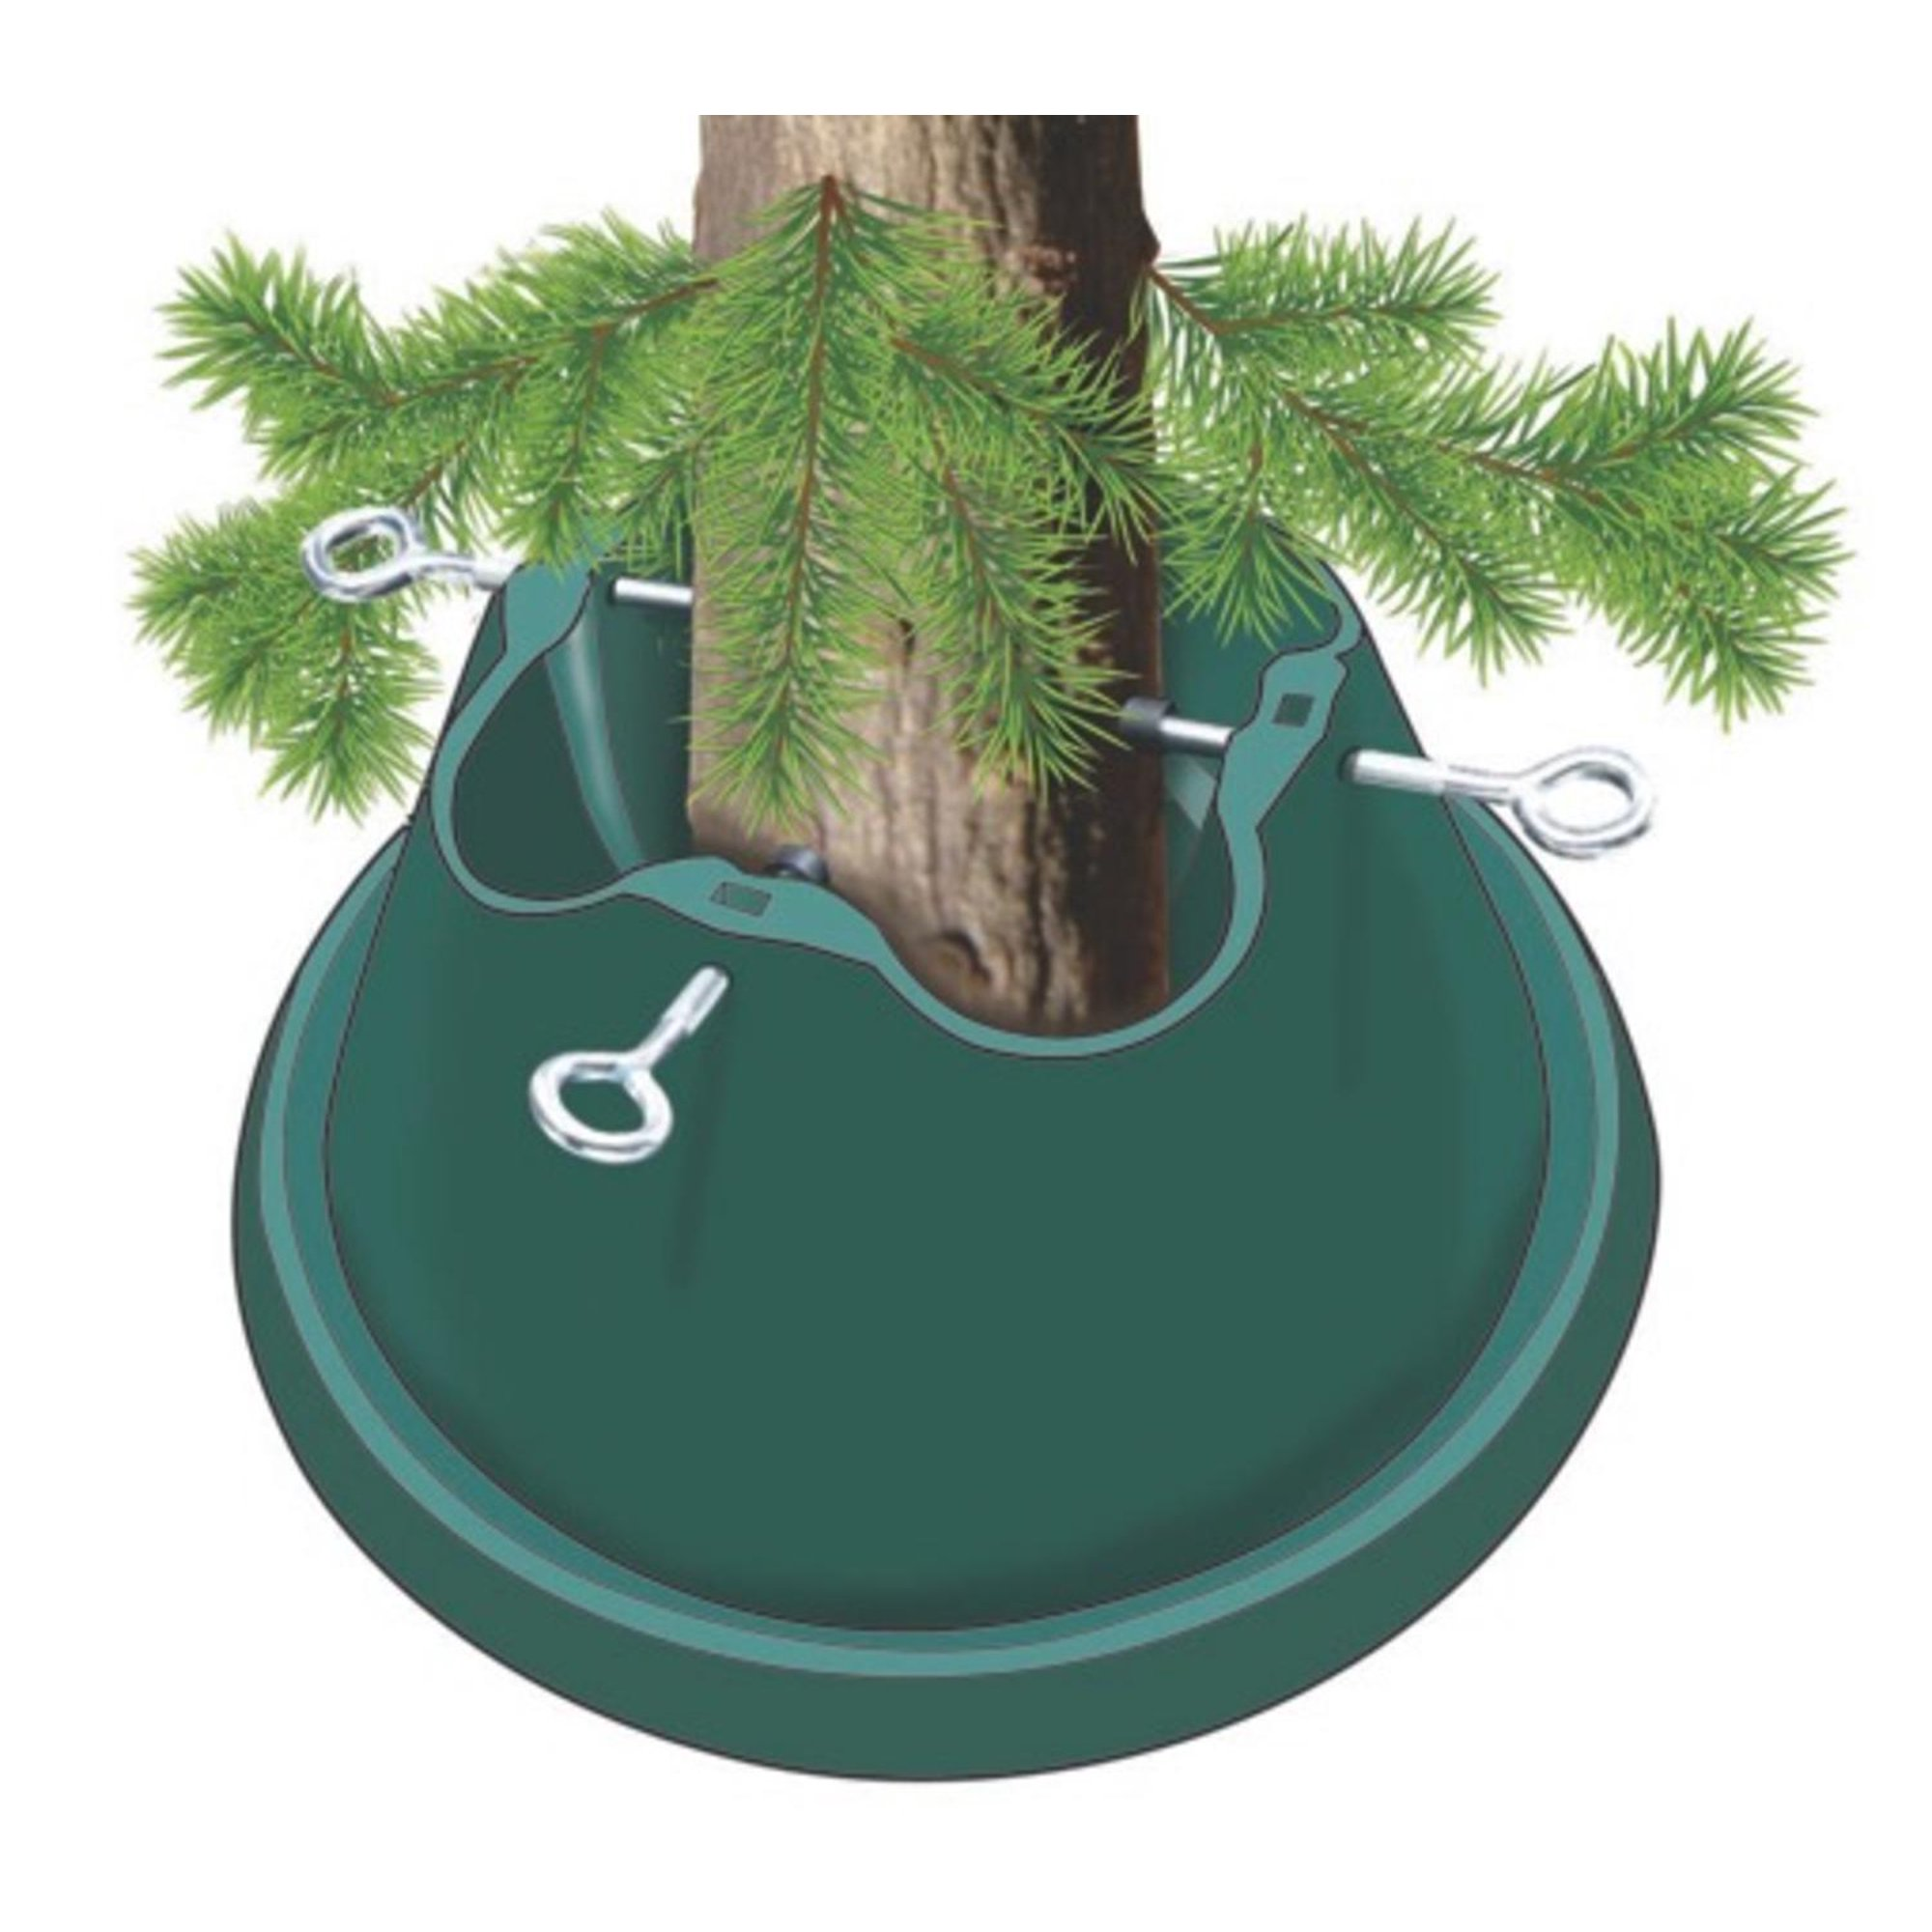 Heavy Duty Christmas Tree Stand.Heavy Duty Green Easy Watering Christmas Tree Stand For Live Trees Up To 10